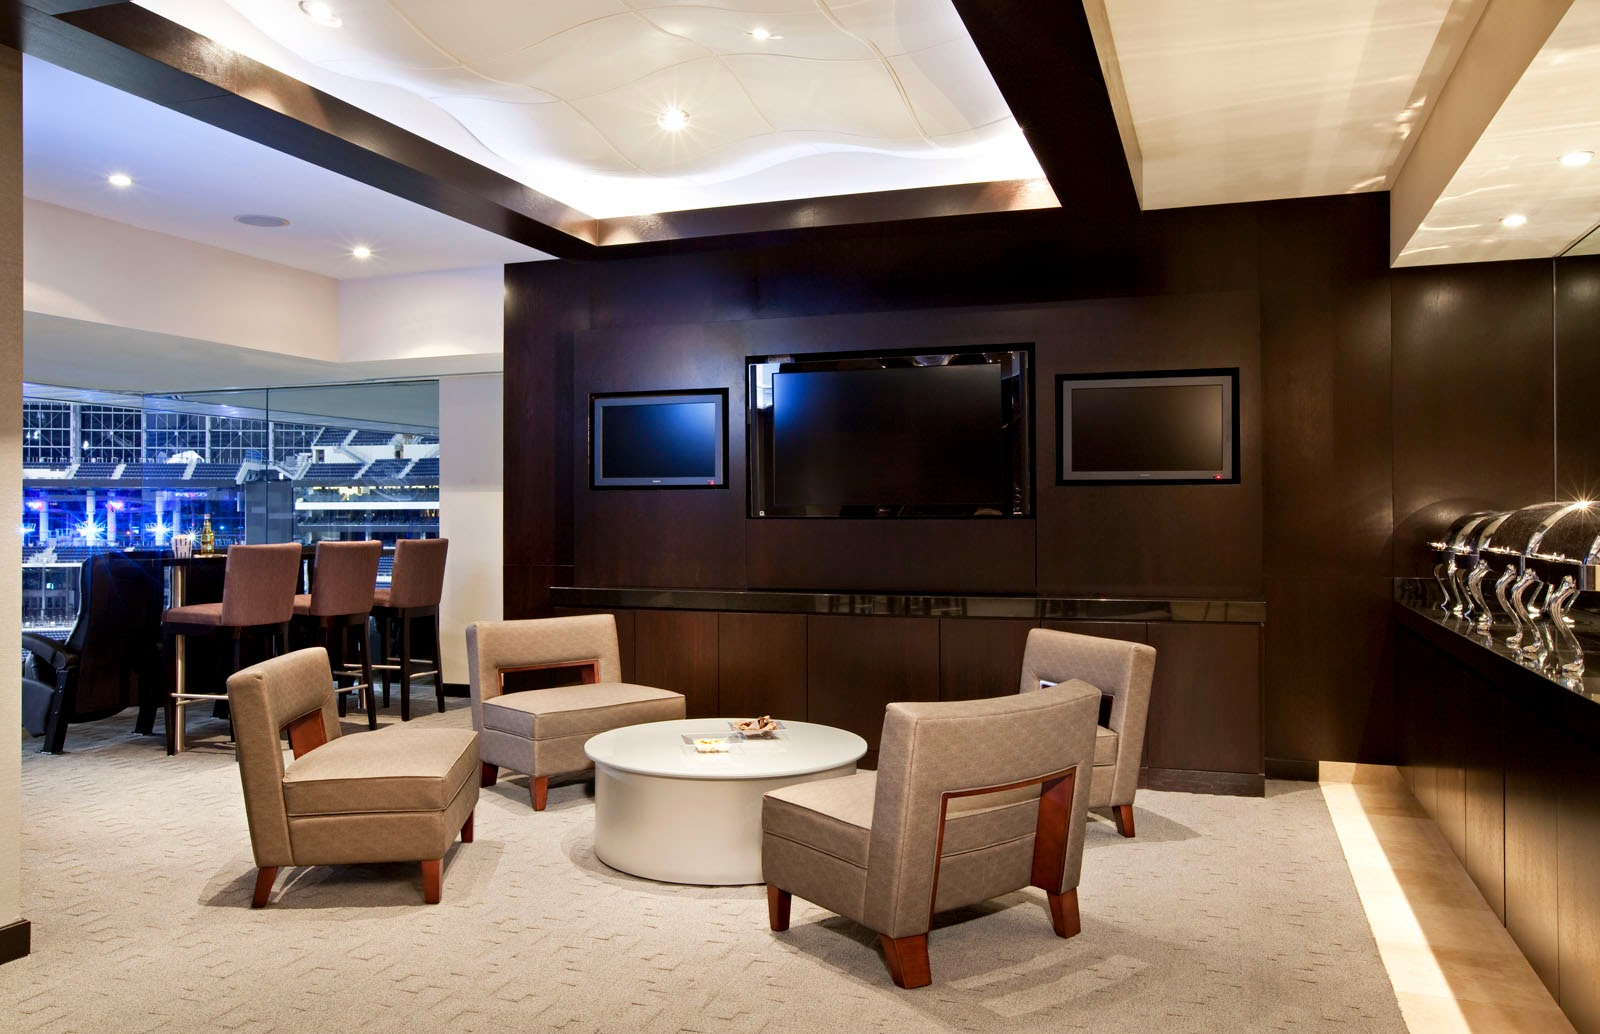 NFL Suites For Sale, Single Game Rentals, Entertain Clients or Employees